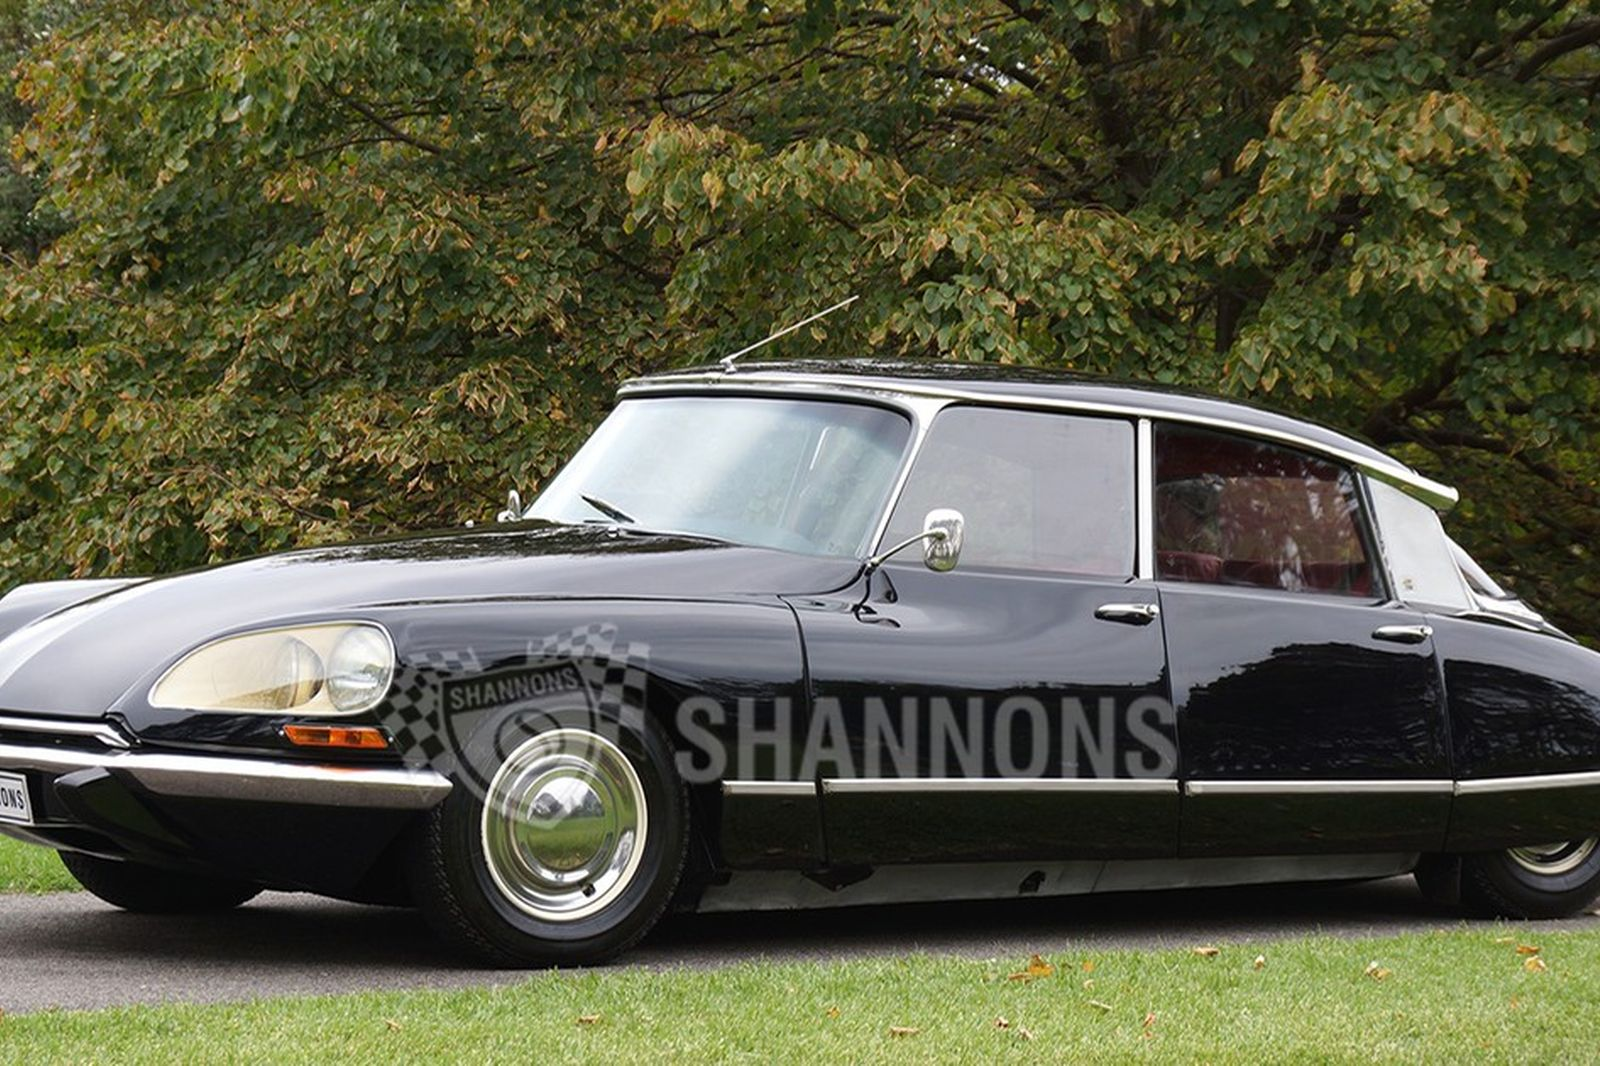 Sold: Citroen DS 21 Sedan Auctions - Lot 23 - Shannons